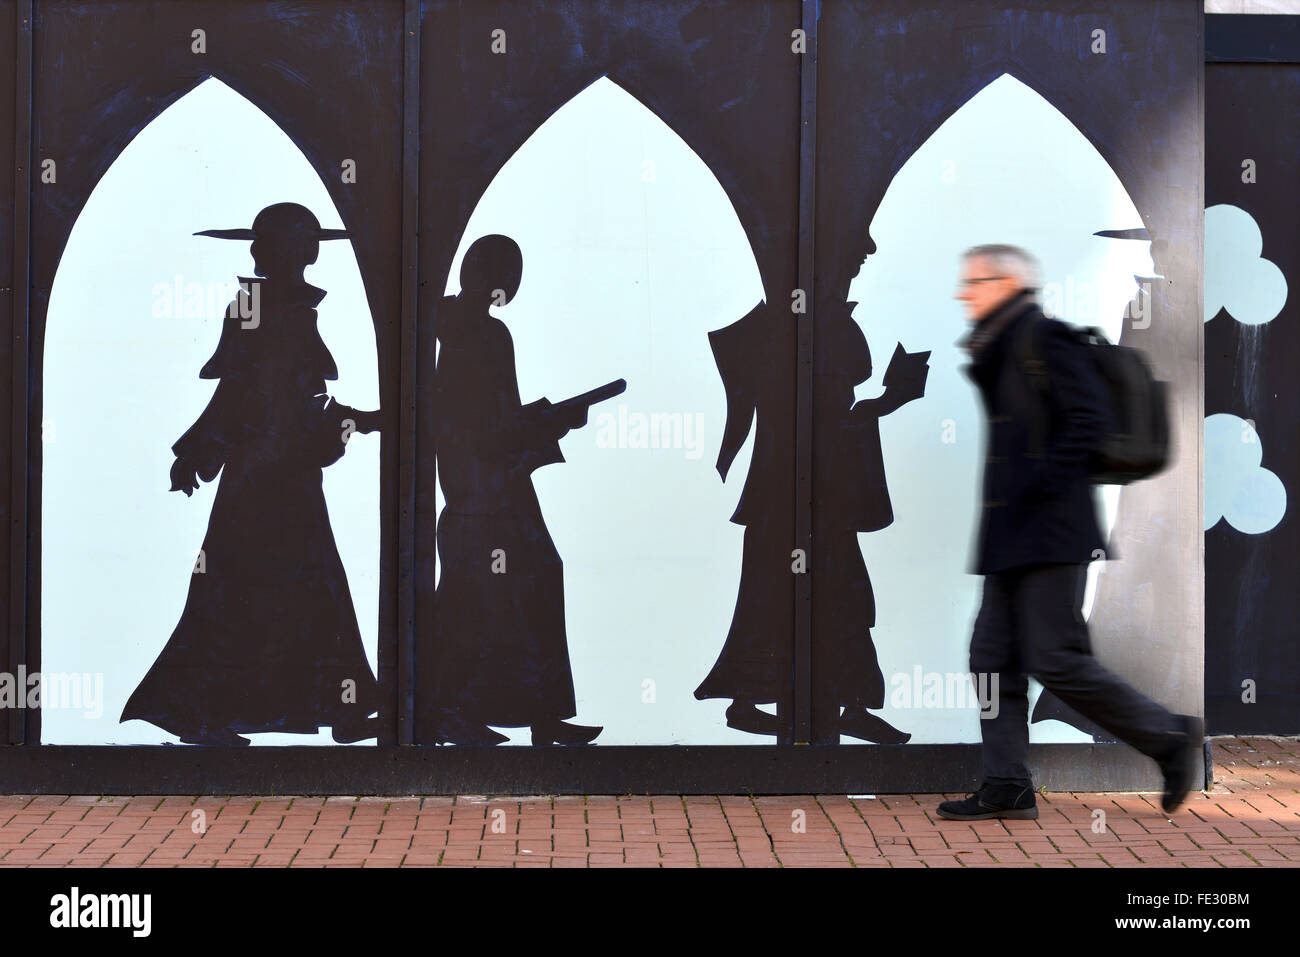 Lewes, UK. 4th February, 2016. An artist has embellished the otherwise drap cladding of a development in the centre - Stock Image